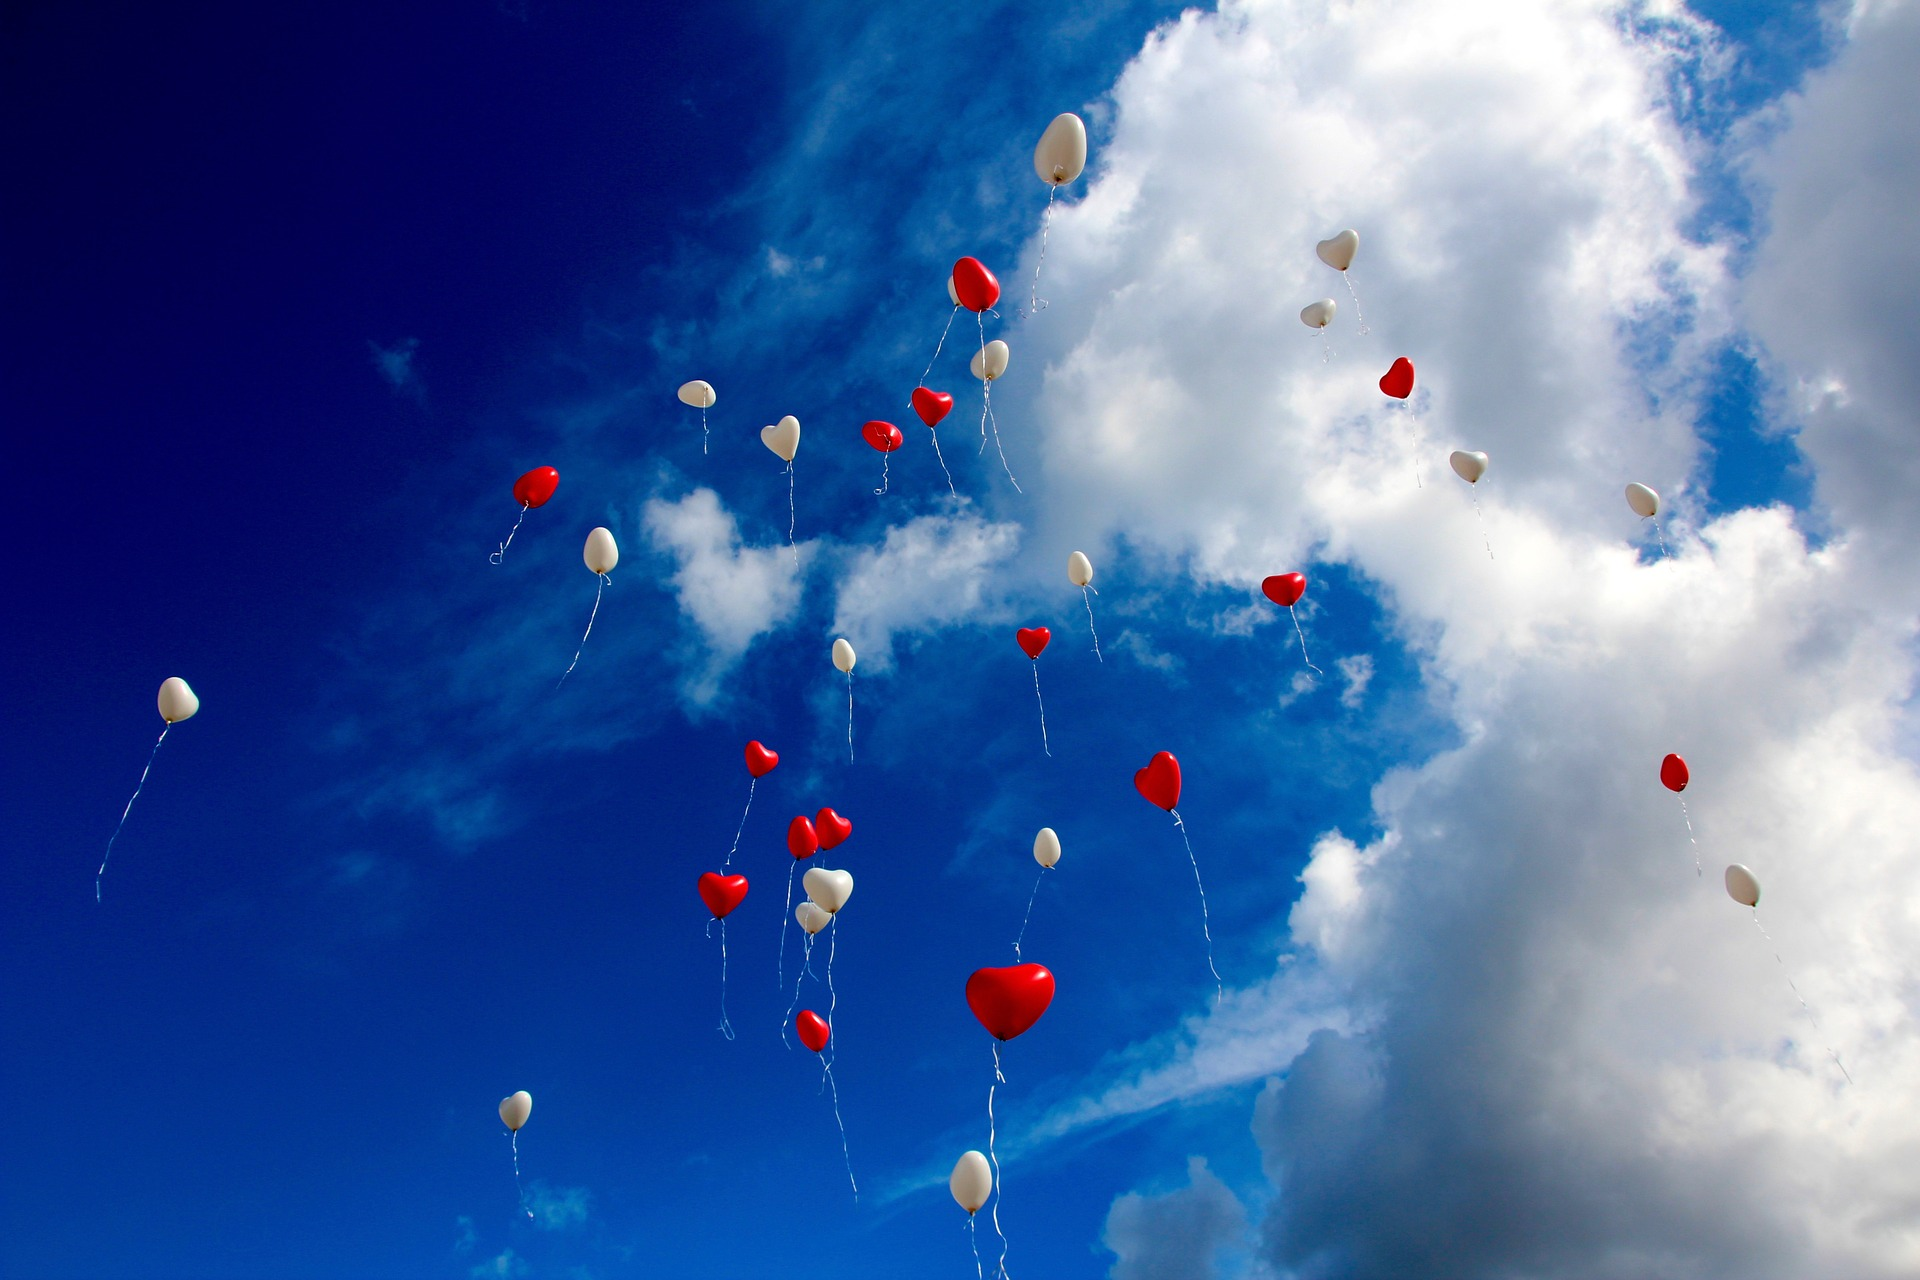 Red and white heart balloons floating into the sky